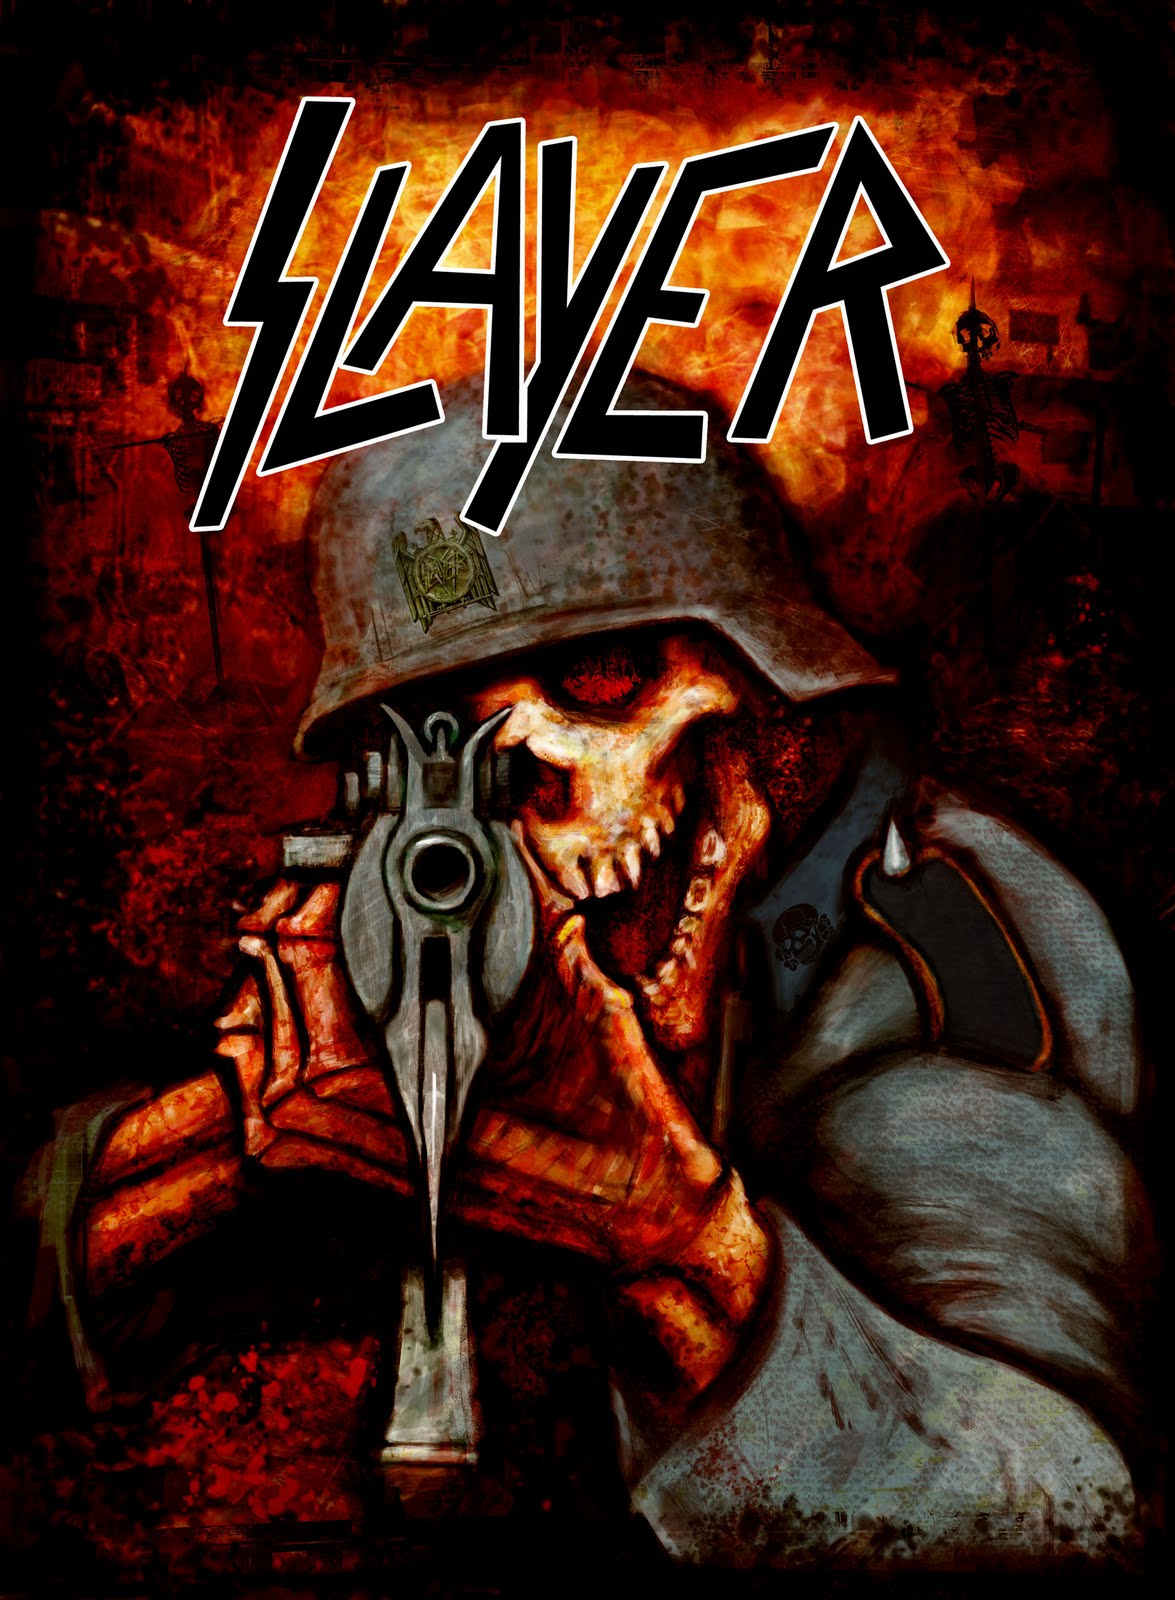 Free Download Iphone Iphone5 Heavy Metal Bands Wallpapers Macrumors Forums 1175x1600 For Your Desktop Mobile Tablet Explore 74 Metal Bands Wallpaper Heavy Metal Wallpaper Free Free Heavy Metal Wallpaper